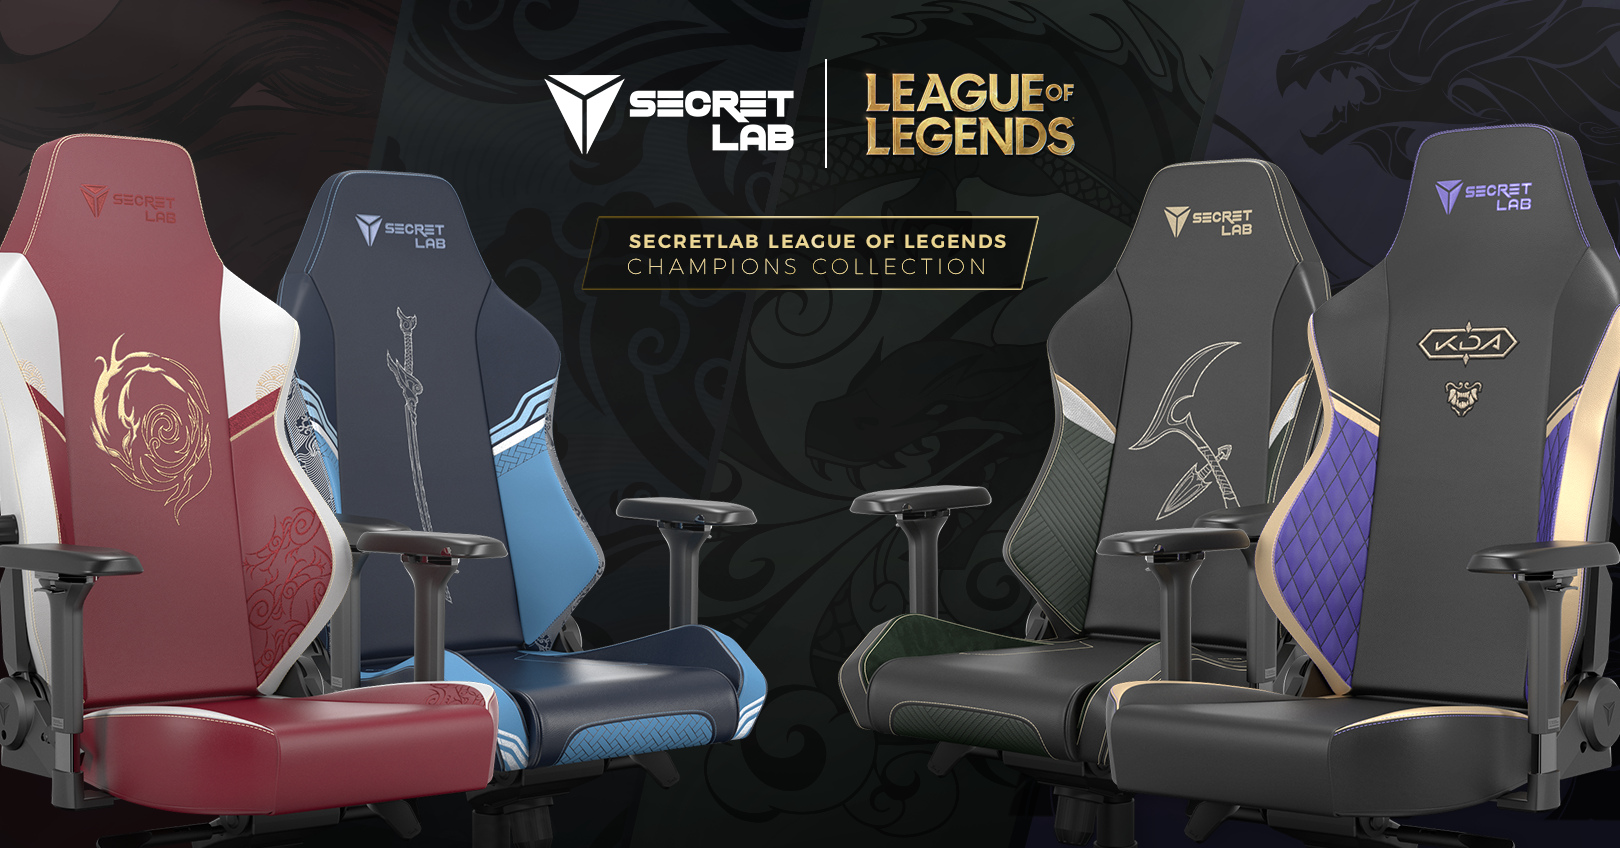 Secretlab League of Legends Champions Collection